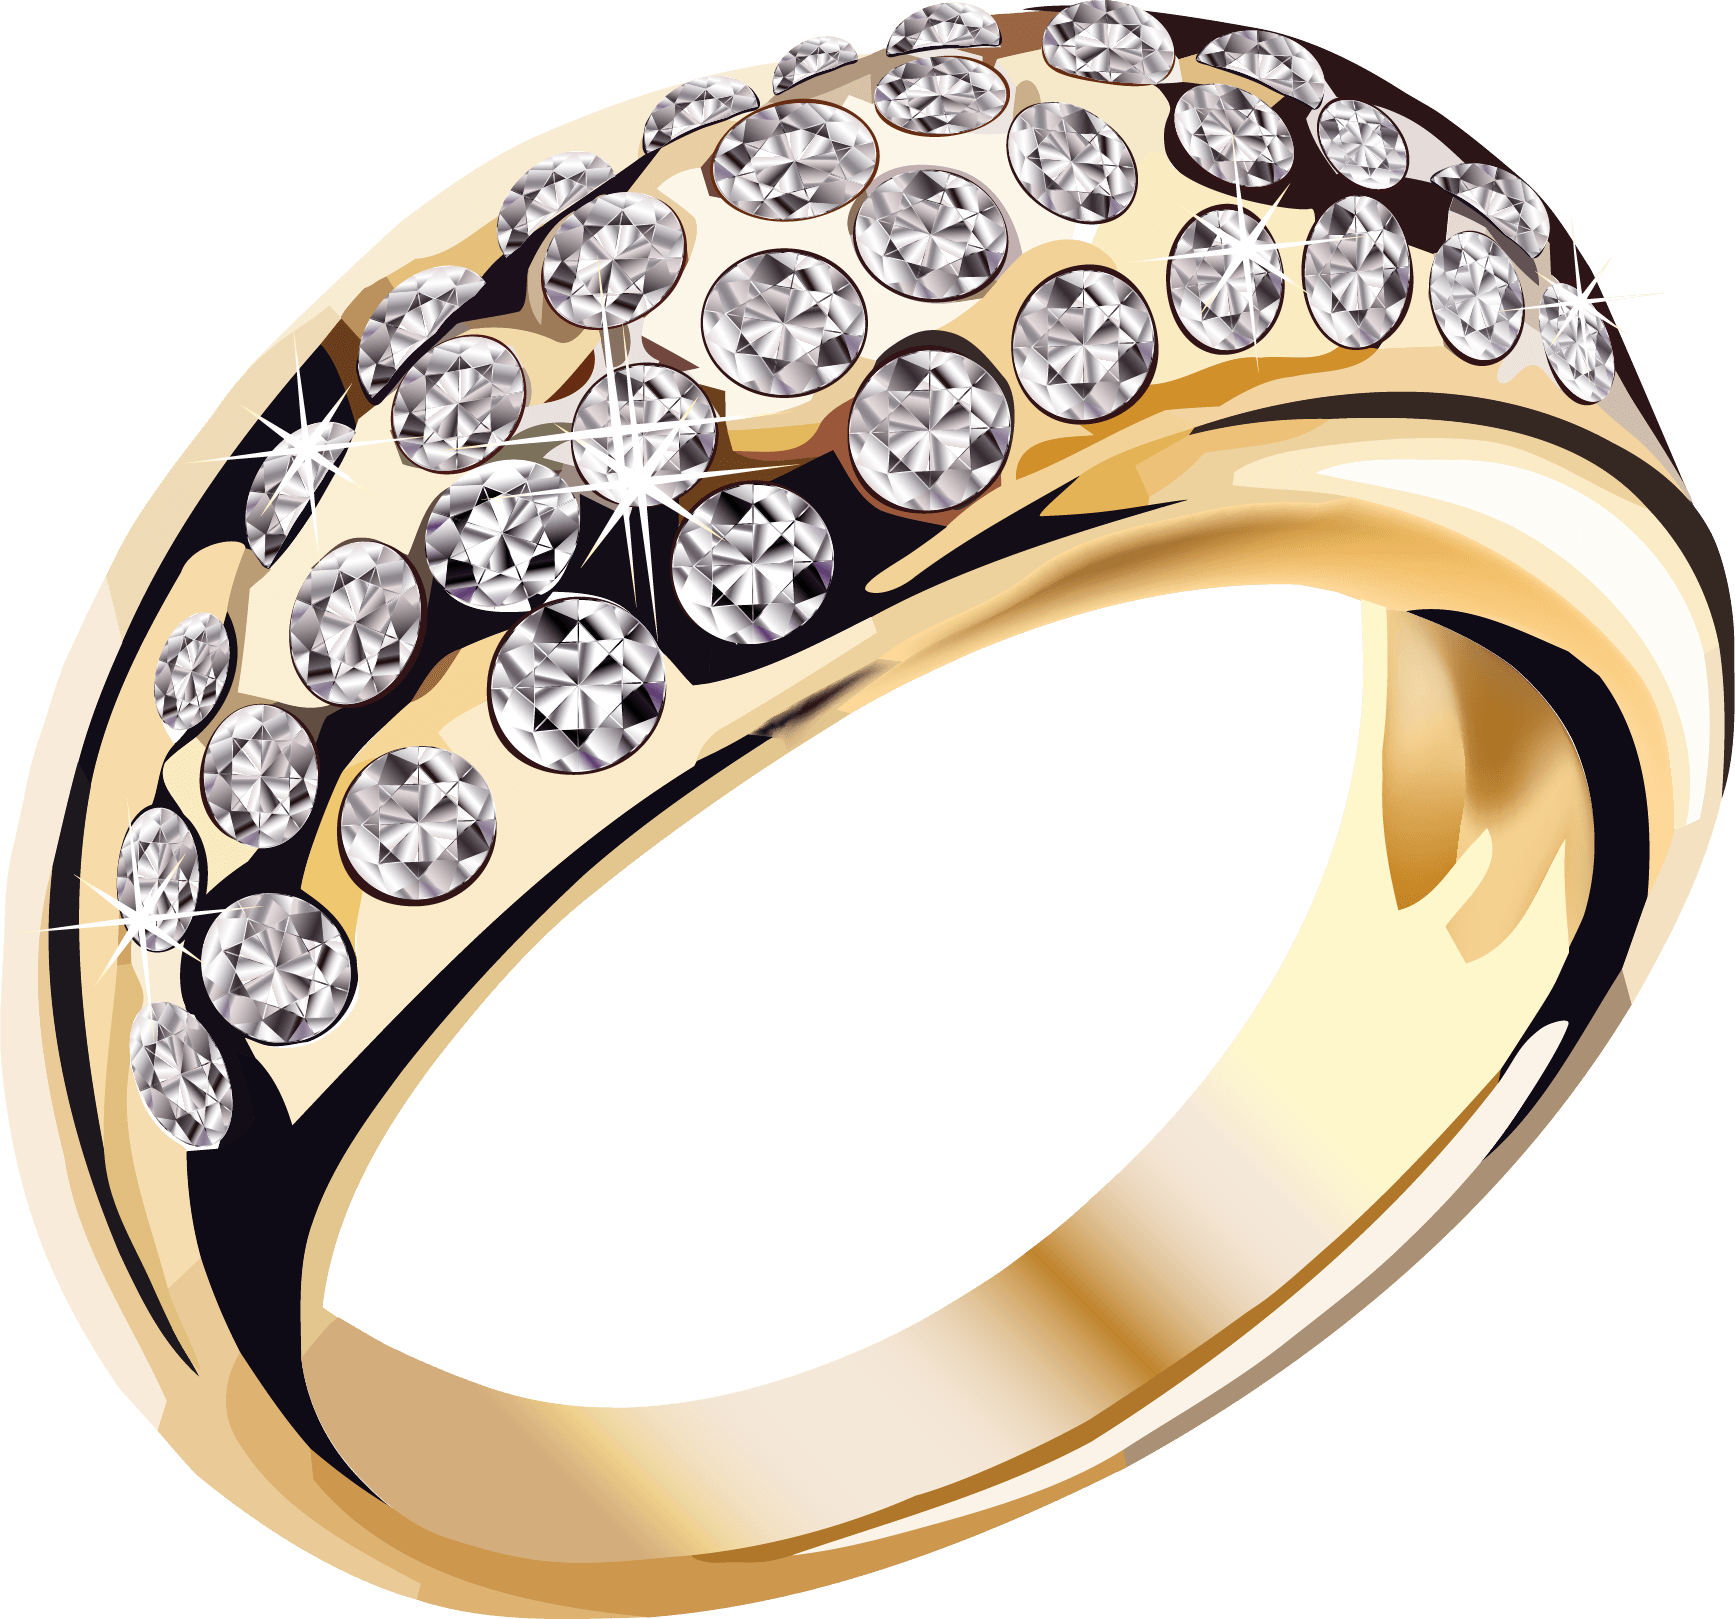 Wedding bling png. Gold diamonds ring jewelry